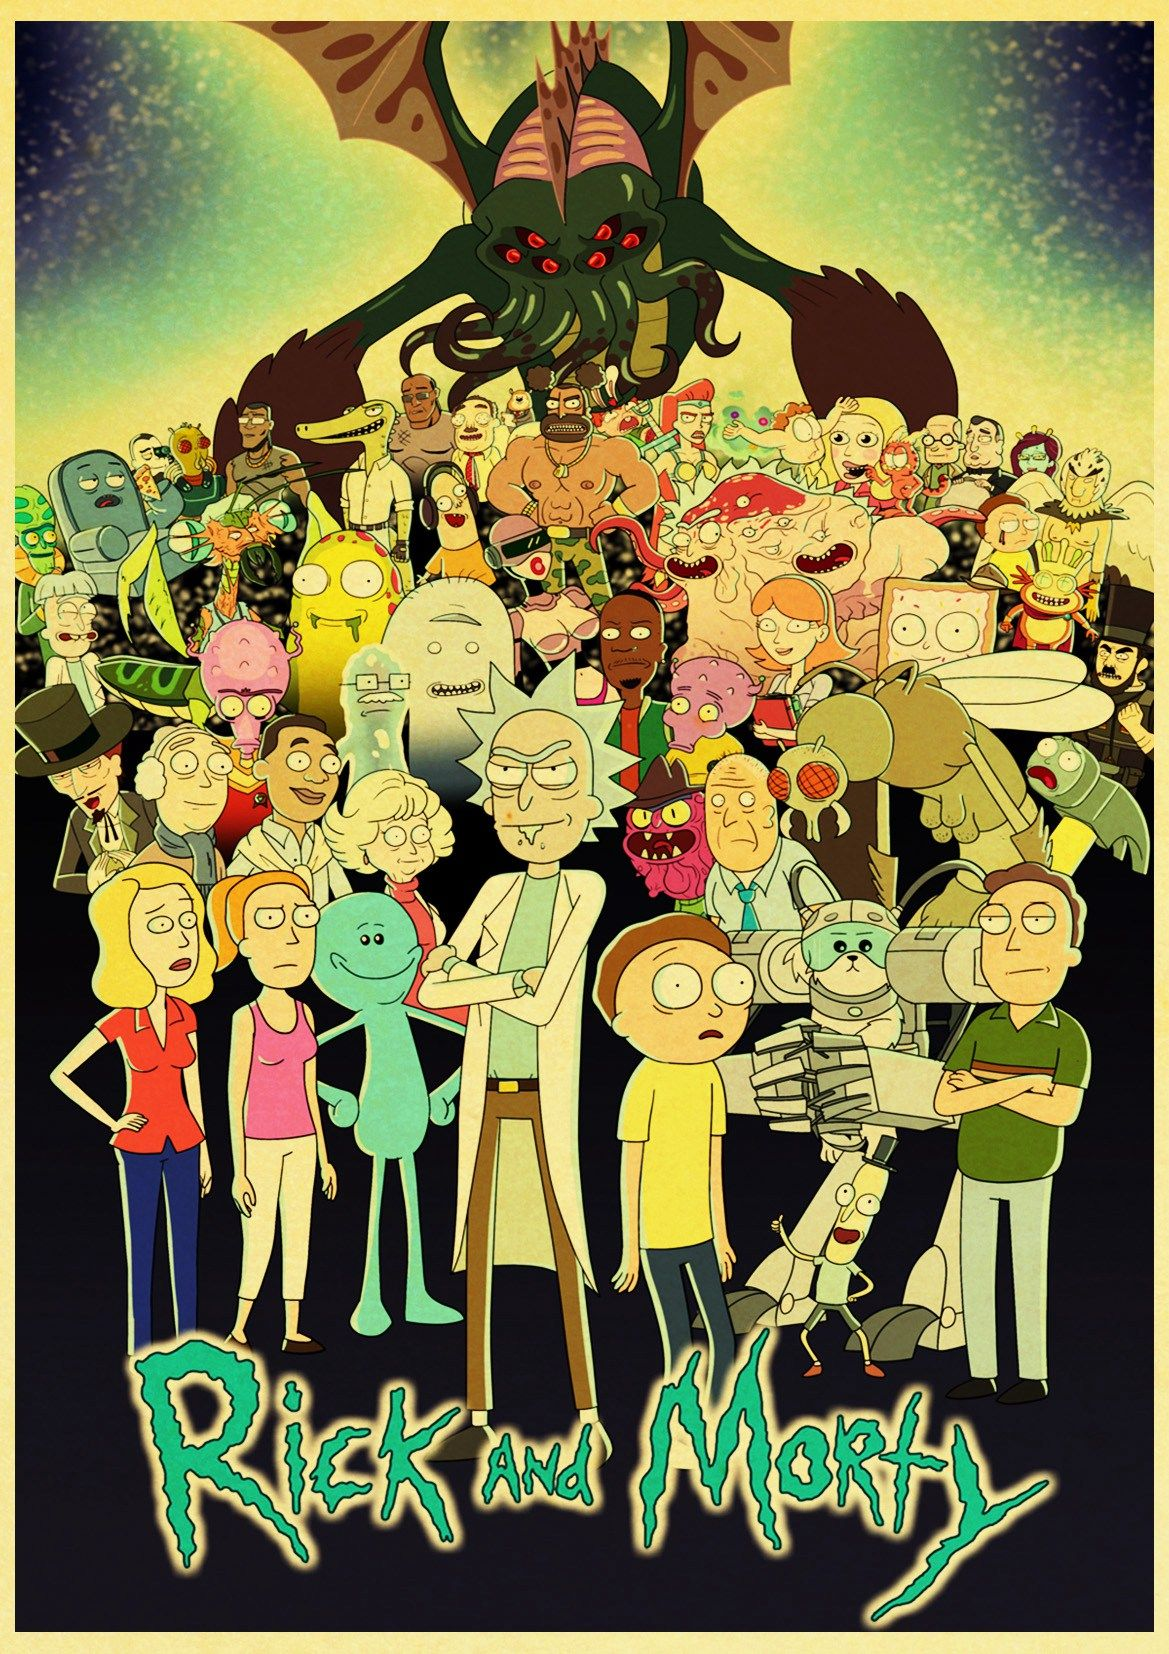 Cartoon Rick And Morty Retro Poster In 2020 Rick Morty Poster